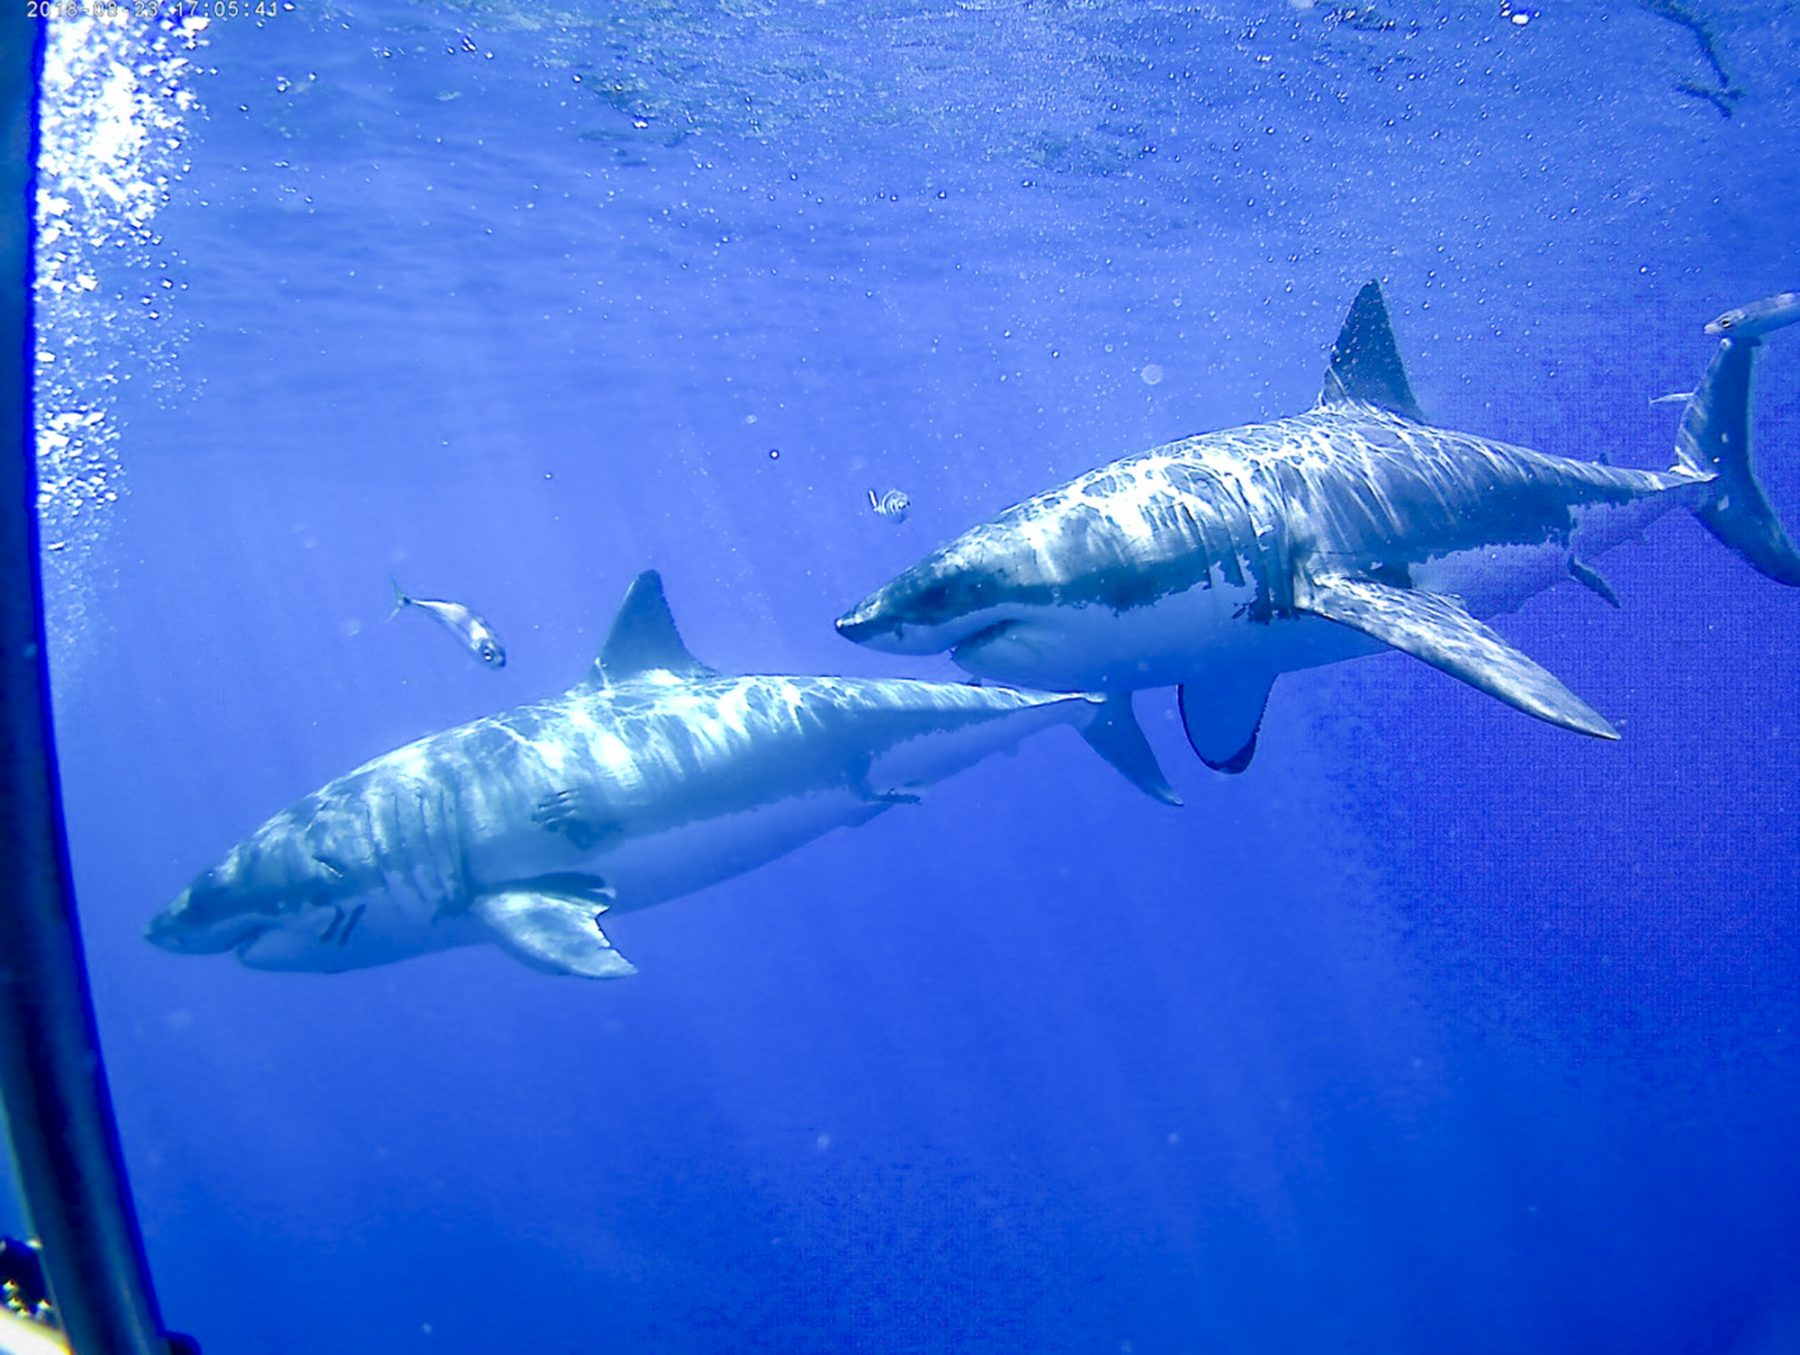 Two great whites at Guadalupe, Photo by Robin Brown